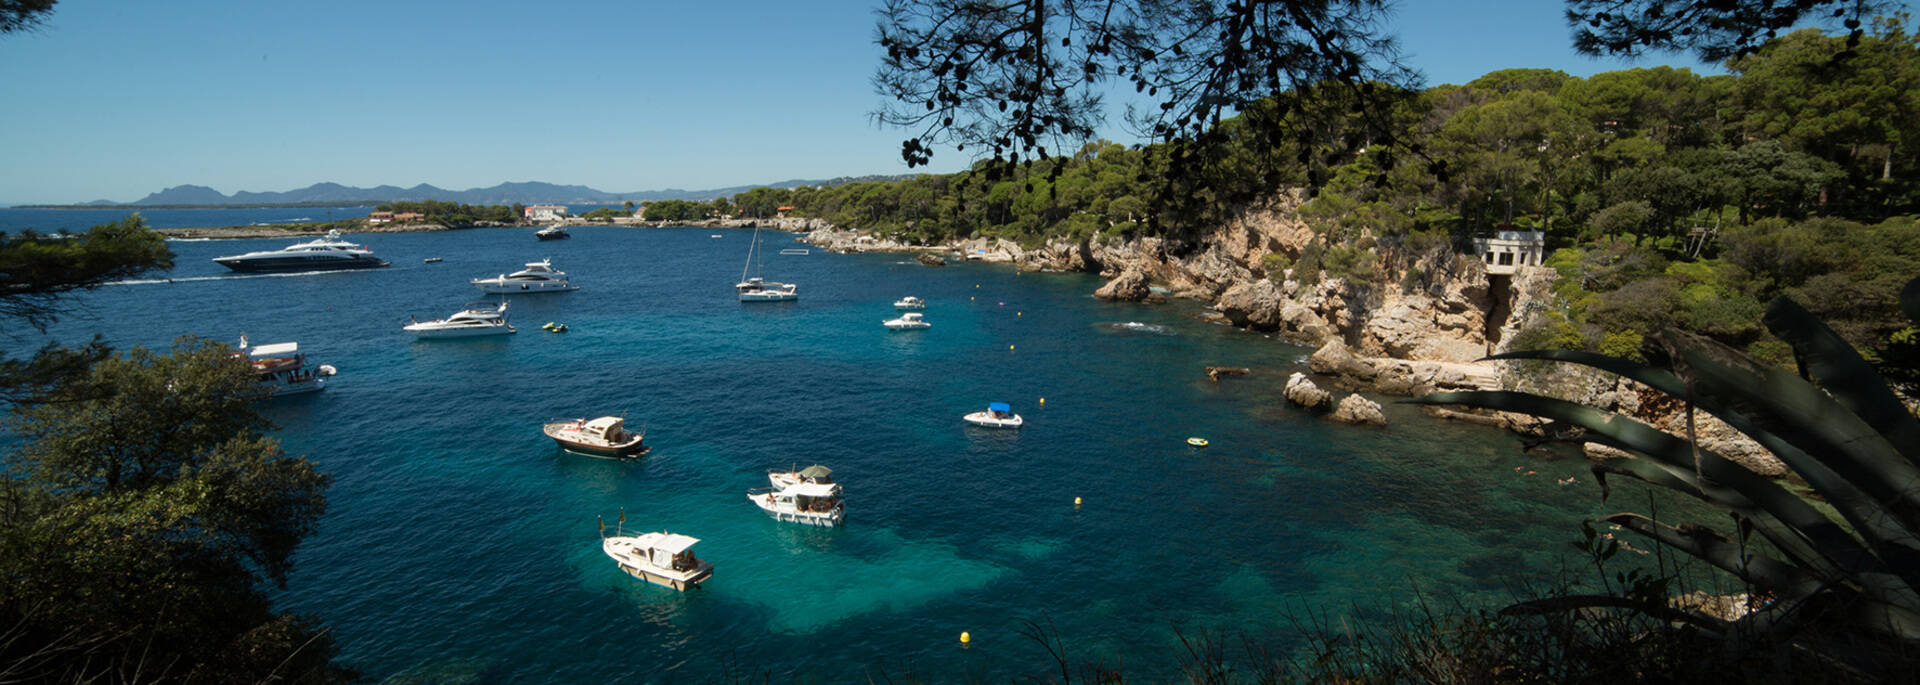 A protected cove ©Mairie d'Antibes - J. Bayle